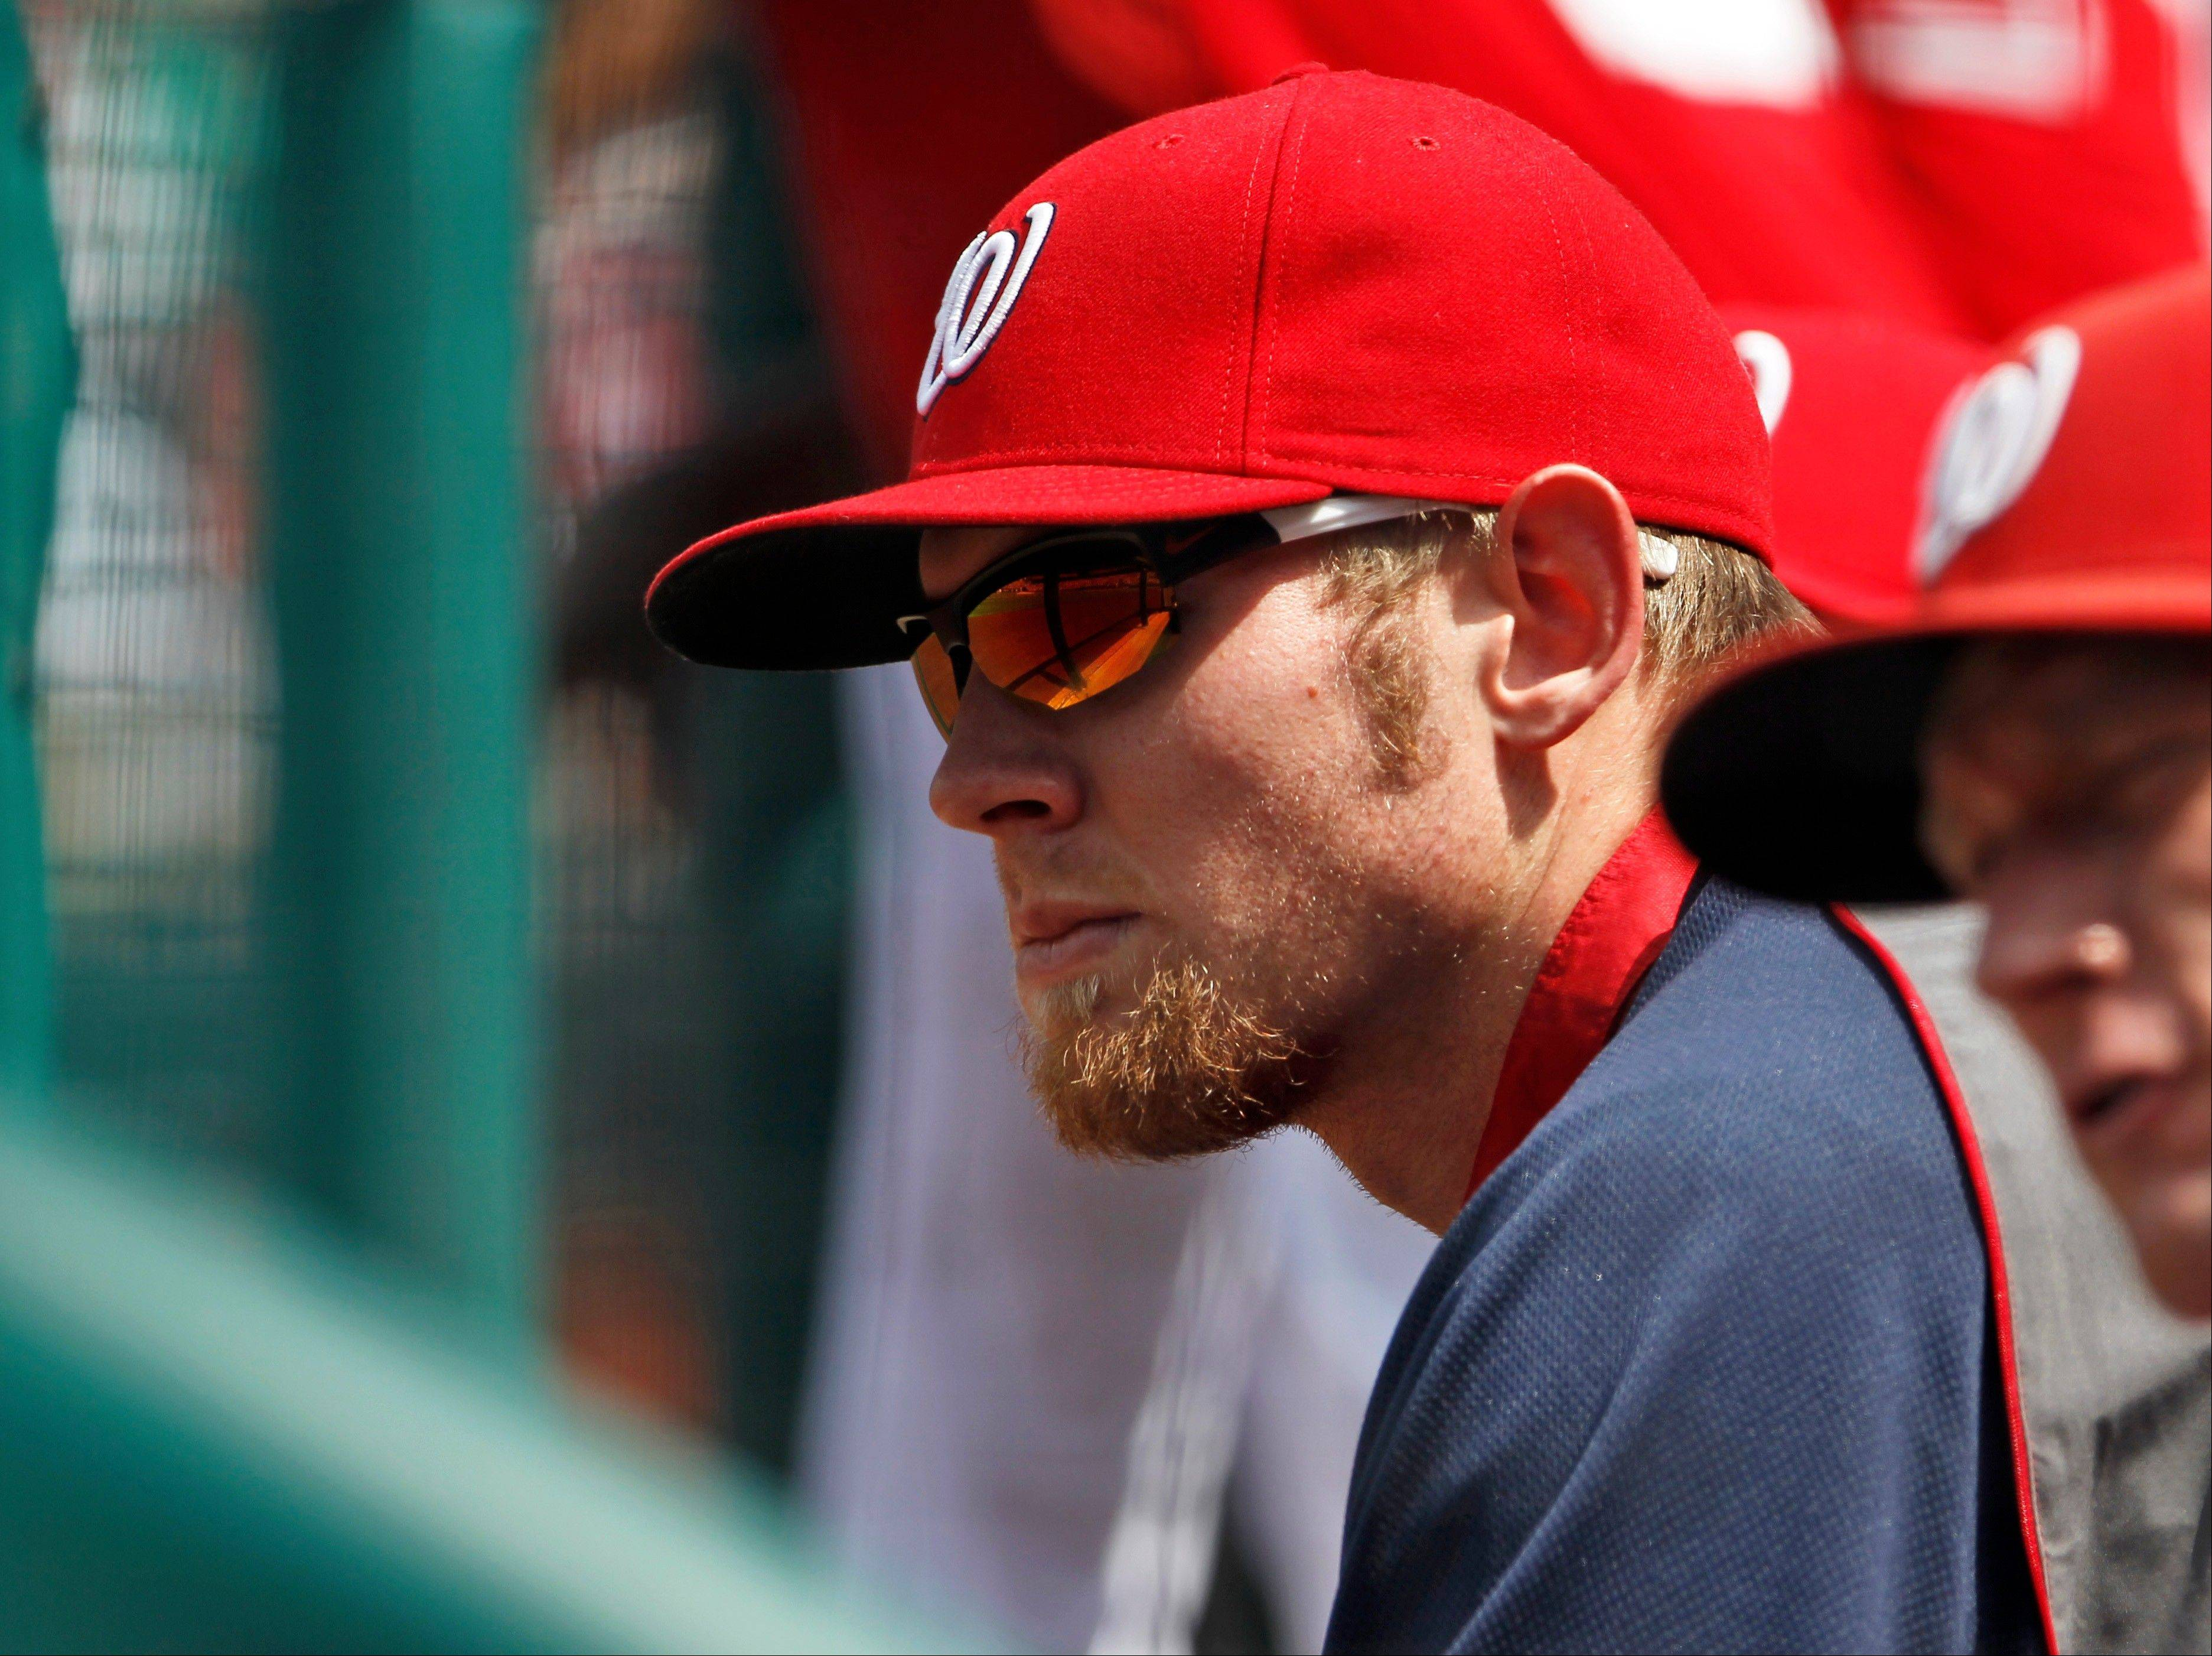 Washington Nationals pitcher Stephen Strasburg sits in the dugout Saturday during the first inning of a baseball game against the Miami Marlins at Nationals Park. Strasburg's season is over after the Washington Nationals decided to shut down the ace right-hander following a shaky start against the Miami Marlins. Manager Davey Johnson made the announcement Saturday morning.